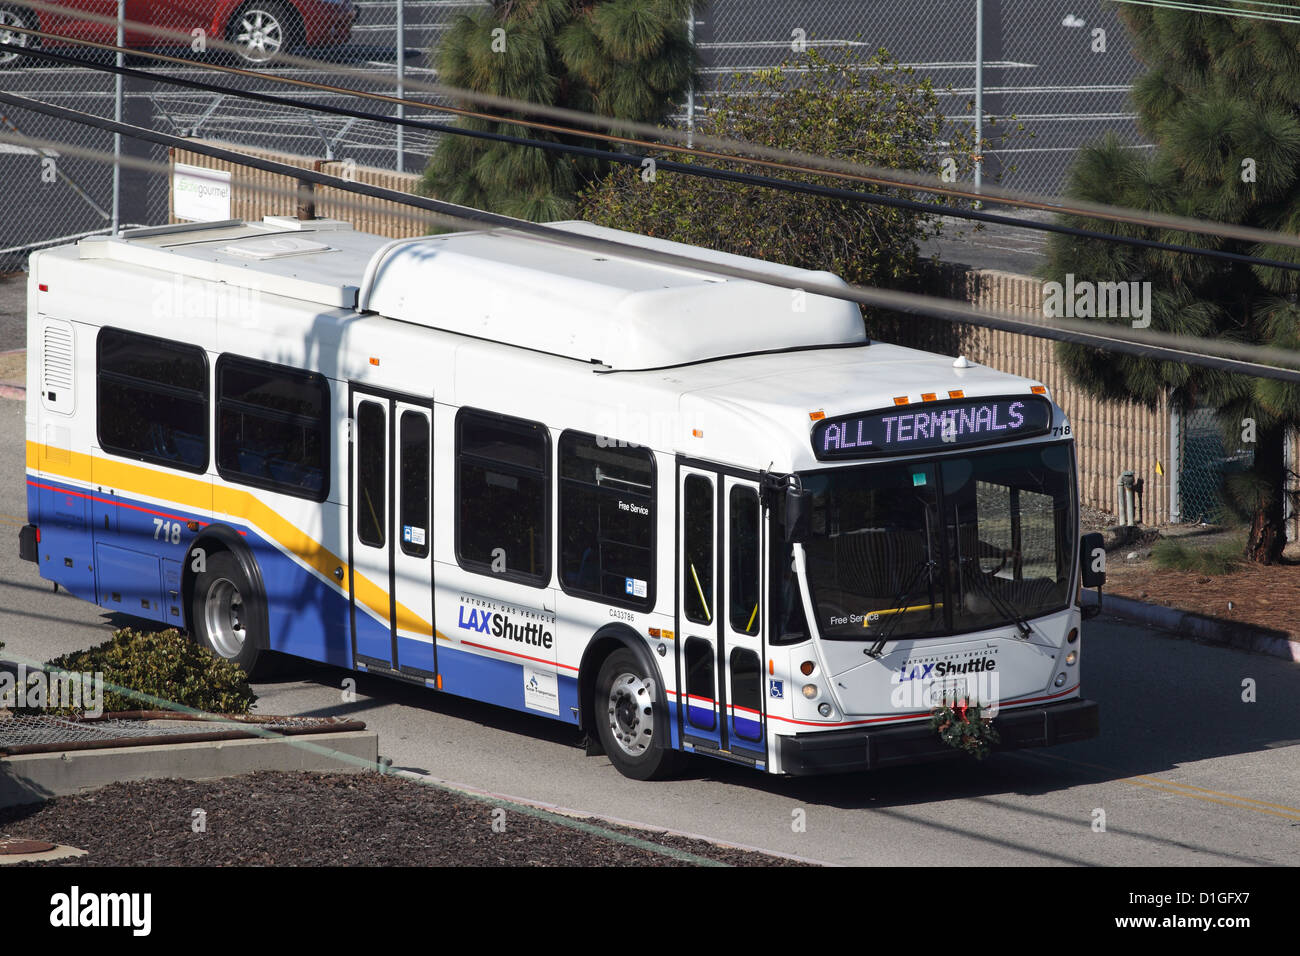 LOS ANGELES, CALIFORNIA, USA - DECEMBER 11, 2012 - A North American Bus Industries (NABI) natural gas powered shuttle - Stock Image